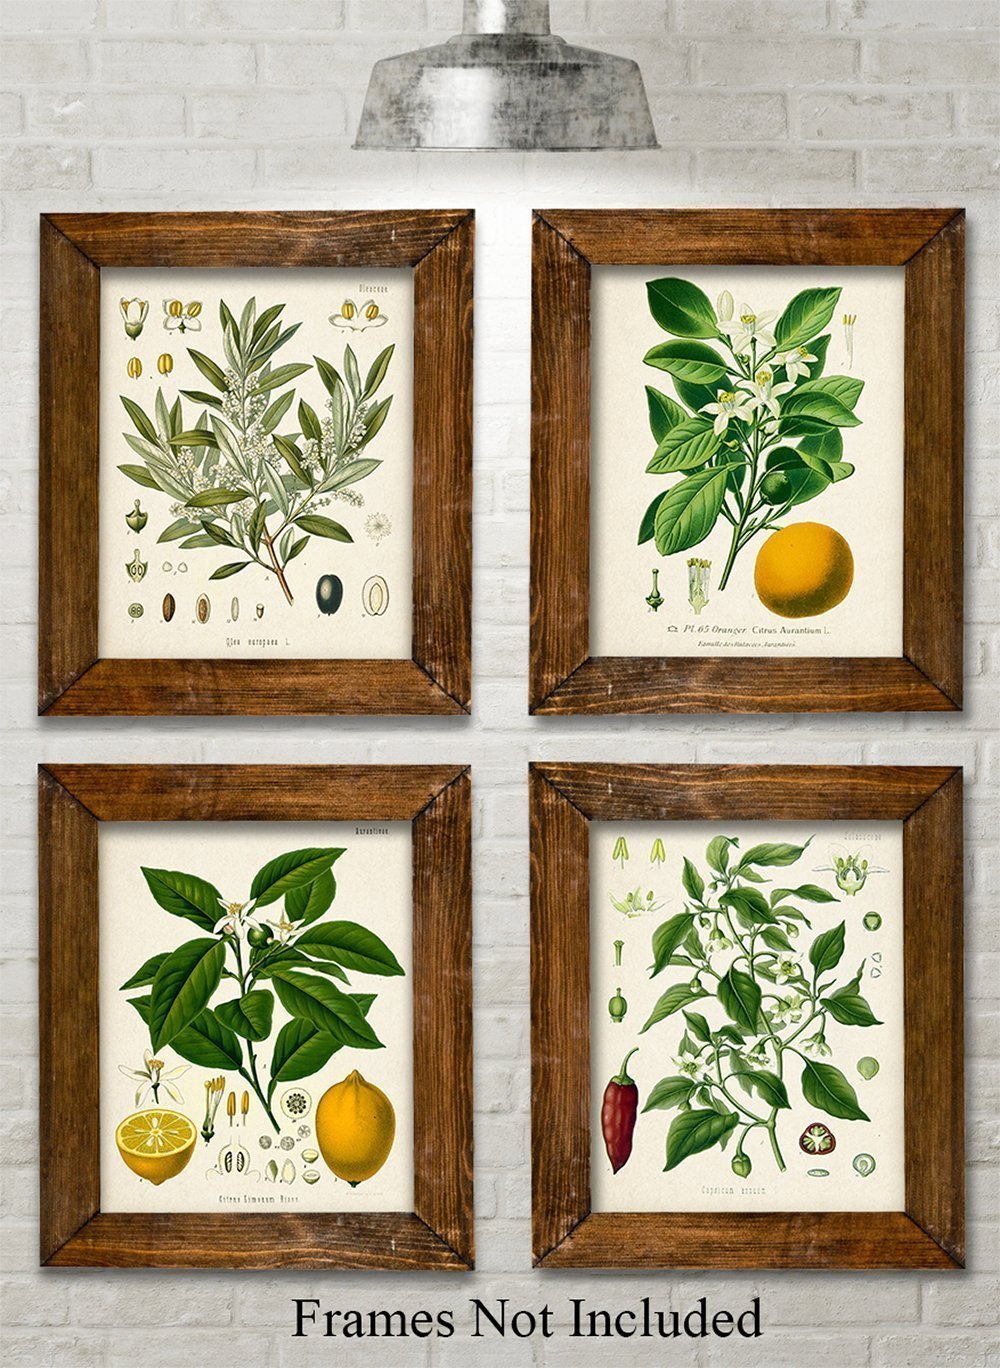 Kitchen Botanicals Art Print - Set of 4 11x14 Unframed Art Prints - Great Kitchen Decor and Gift for Nature Lovers by Personalized Signs by Lone Star Art